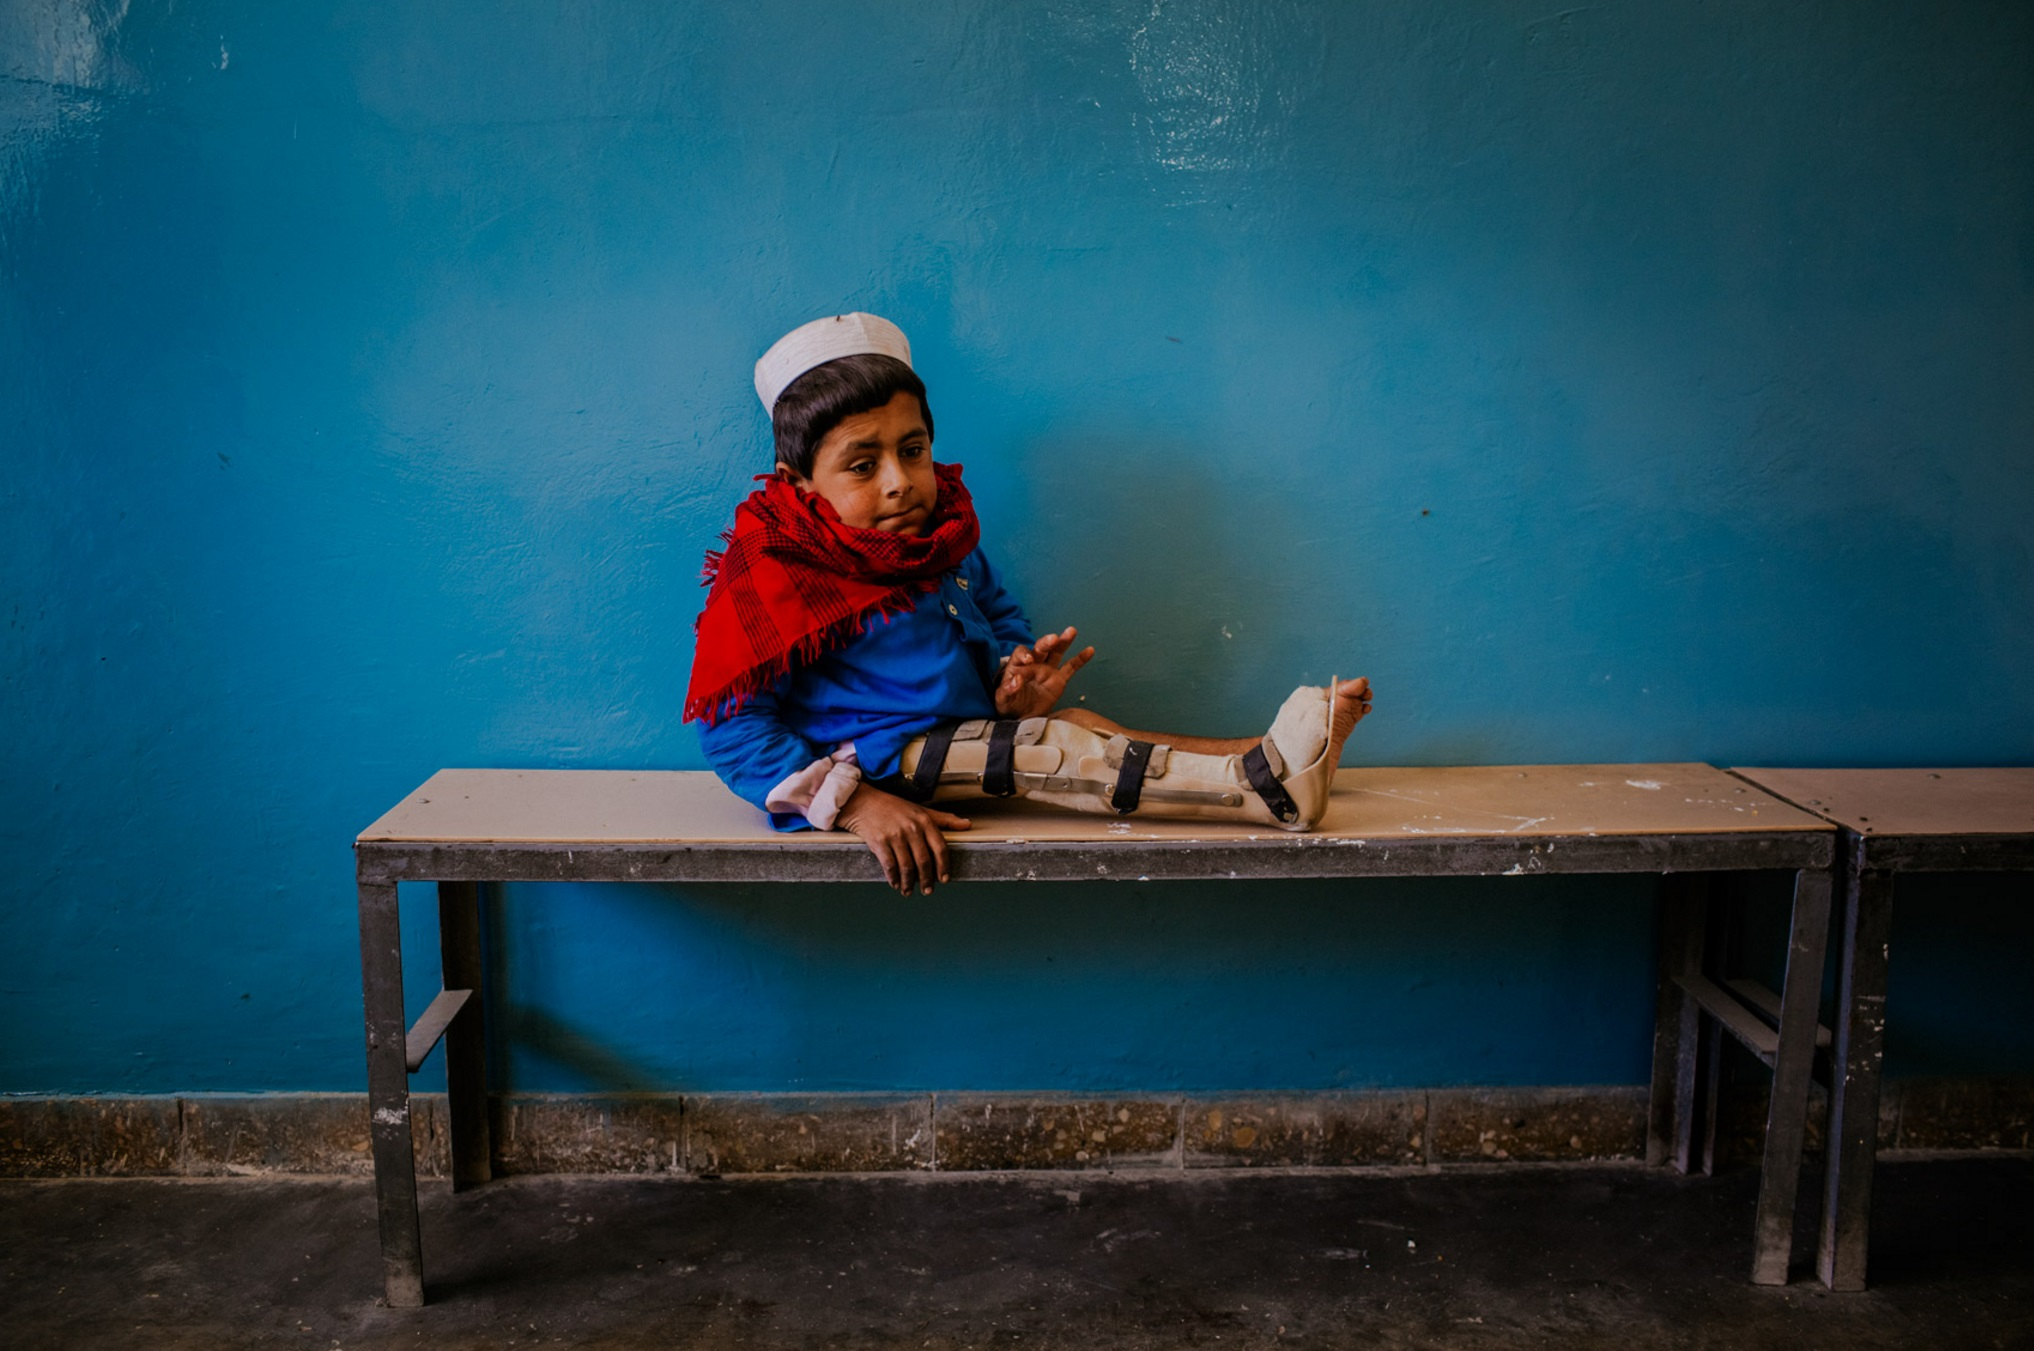 Bismillah Gul, 12, suffering from poliomyelitis waits for his father Masta Gul, after having traveled from Khost province to get treatment at the International Committee of the Red Cross (ICRC) orthopedic center in Kabul, Afghanistan. November 19, 2012 © Daniel Berehulak/Getty Images